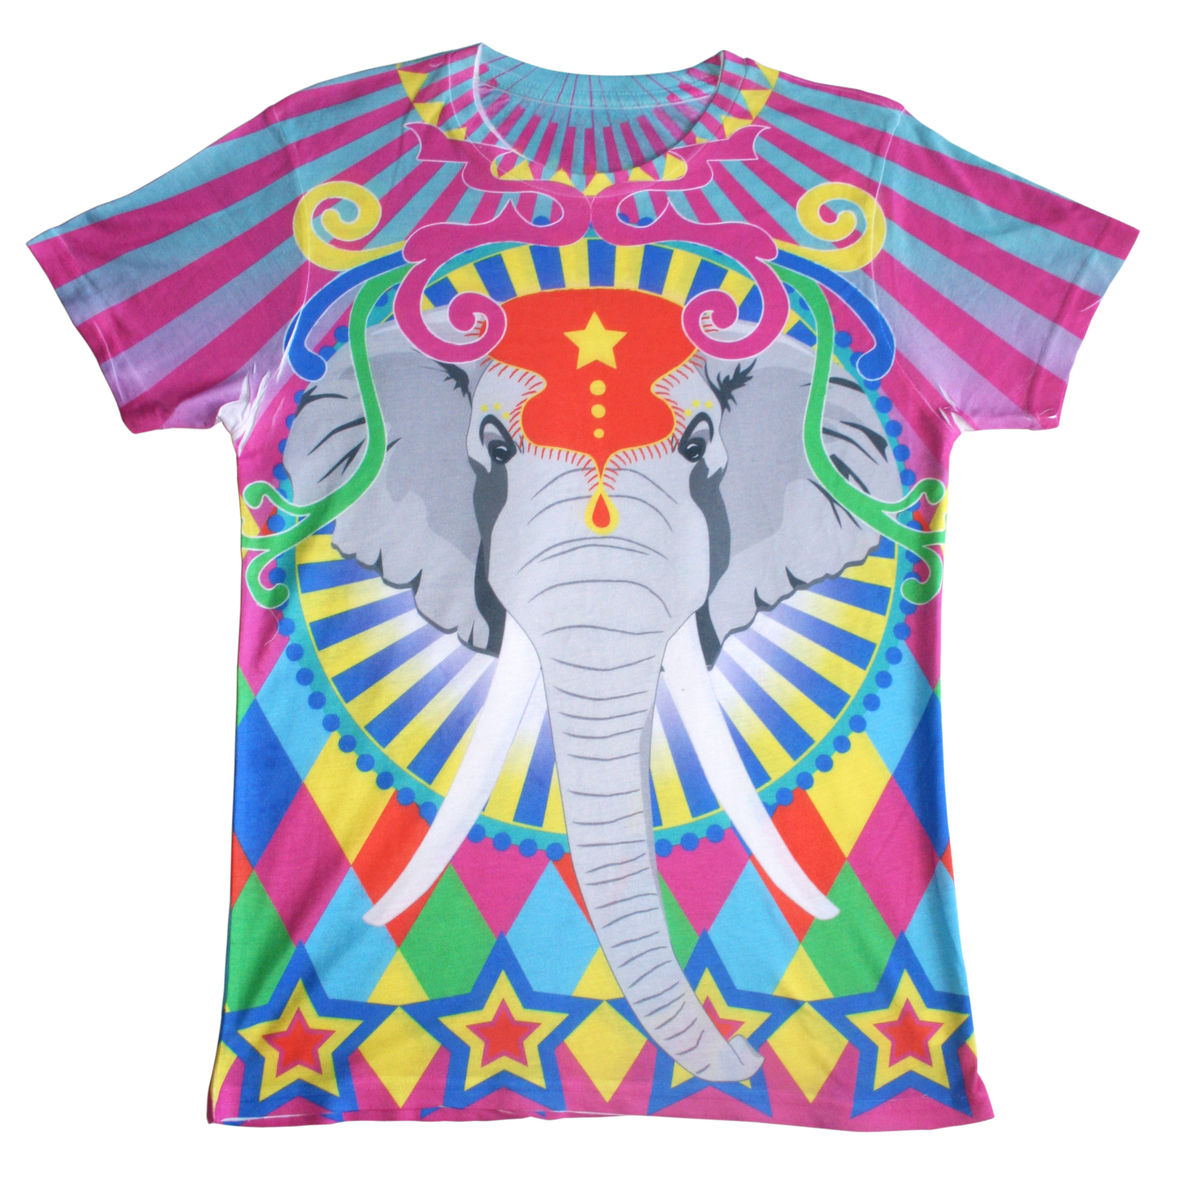 Elephantastic T-Shirt - product images  of